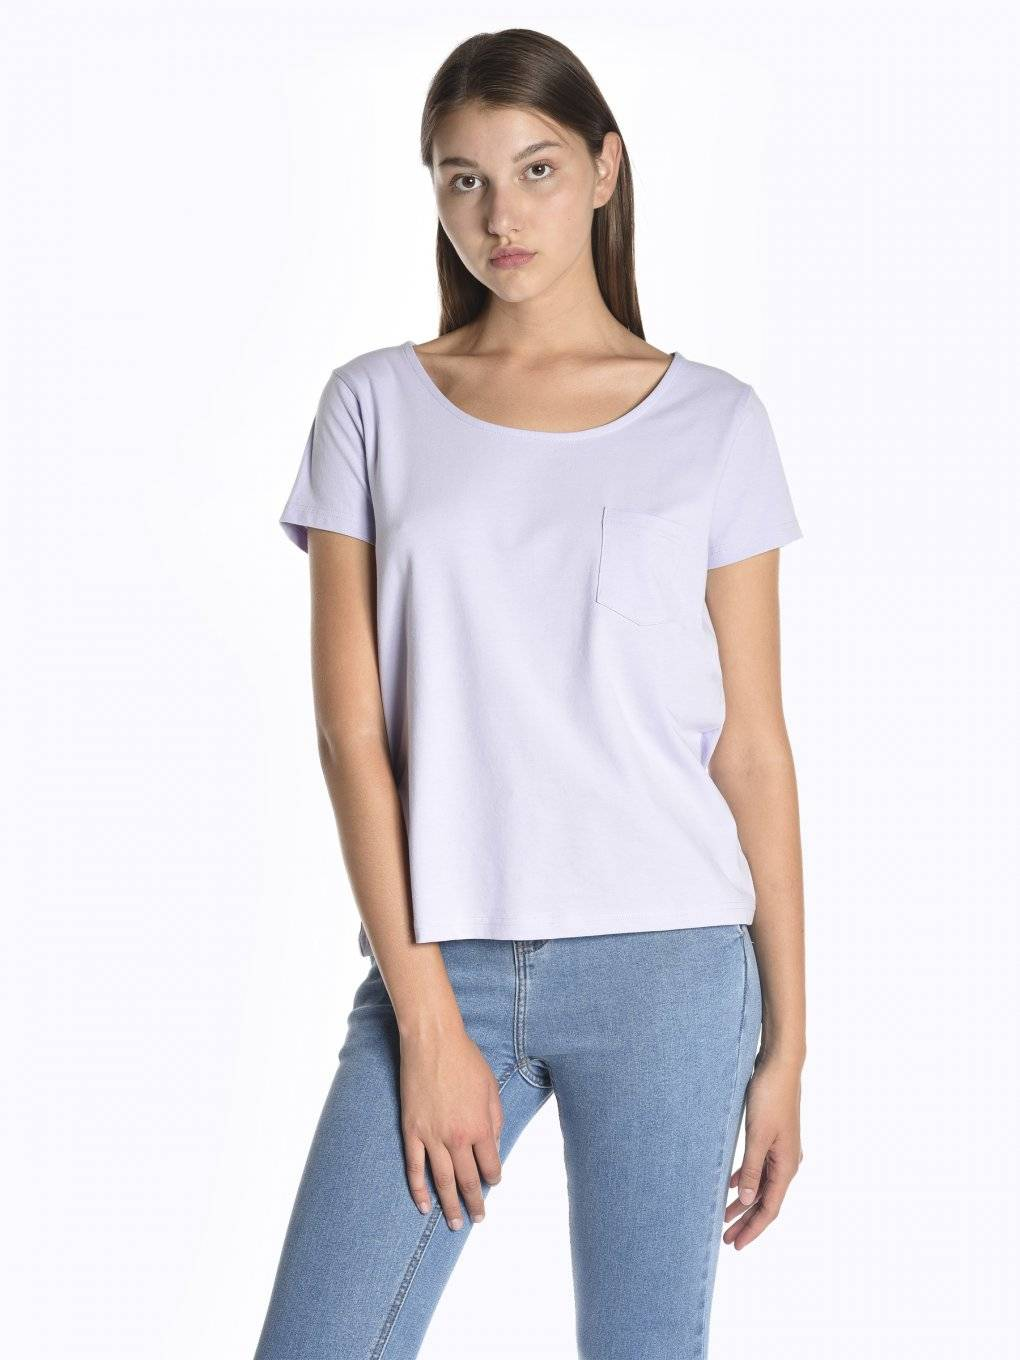 T-shirt with front pocket